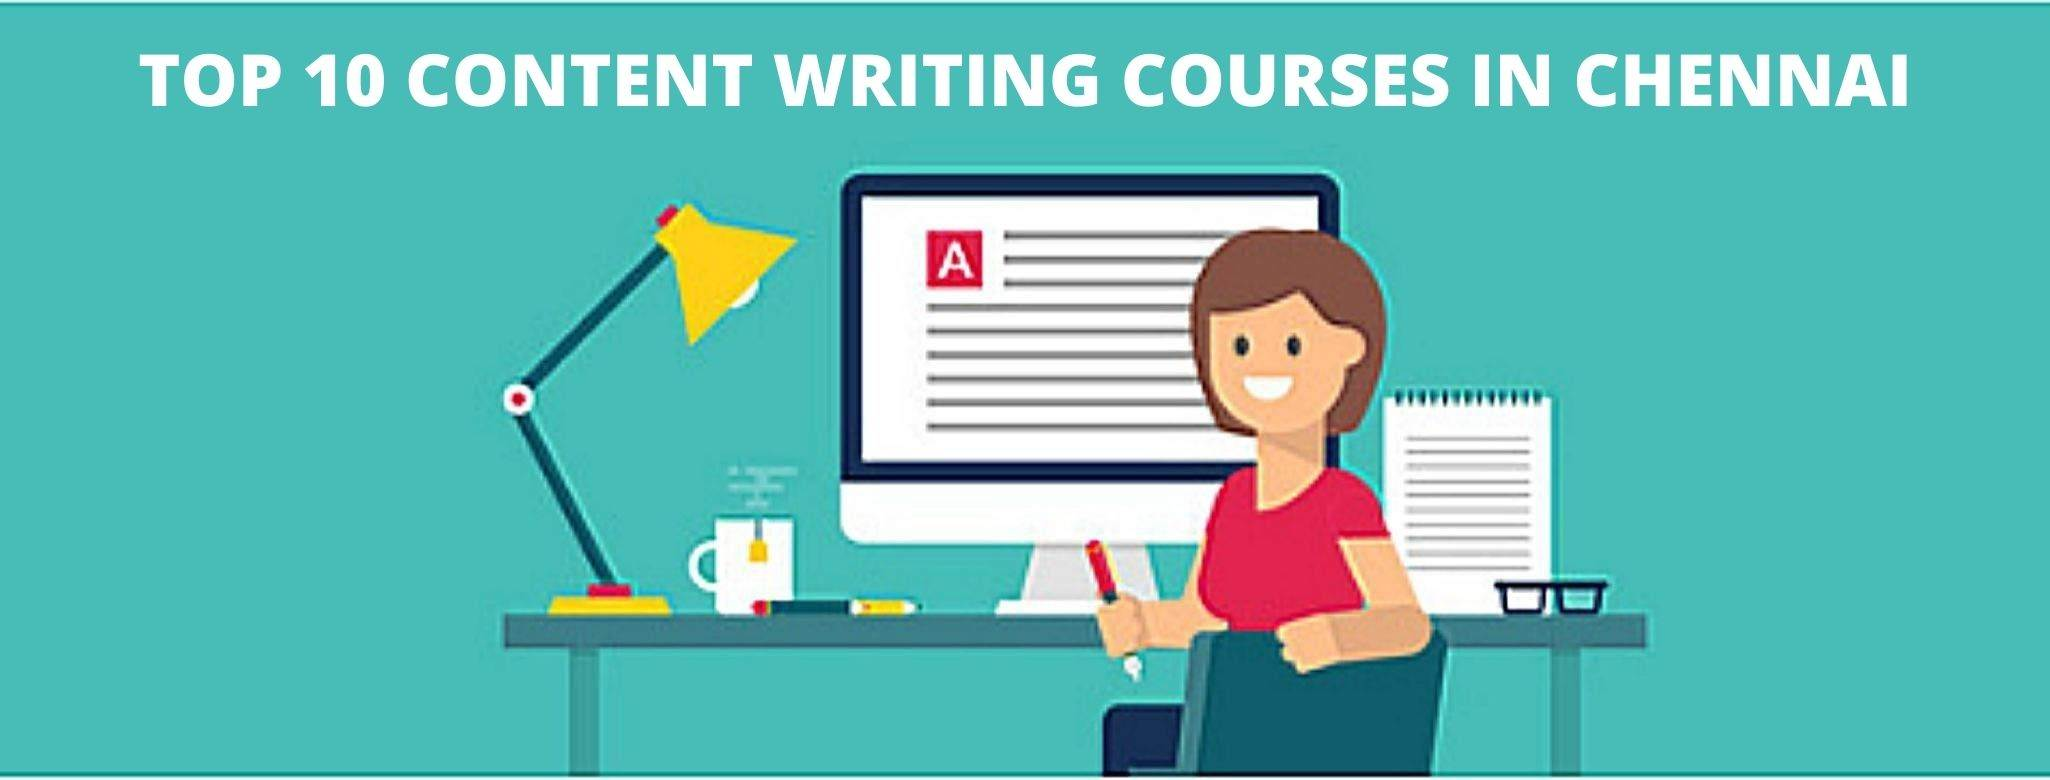 The image is about content writing courses in Chennai